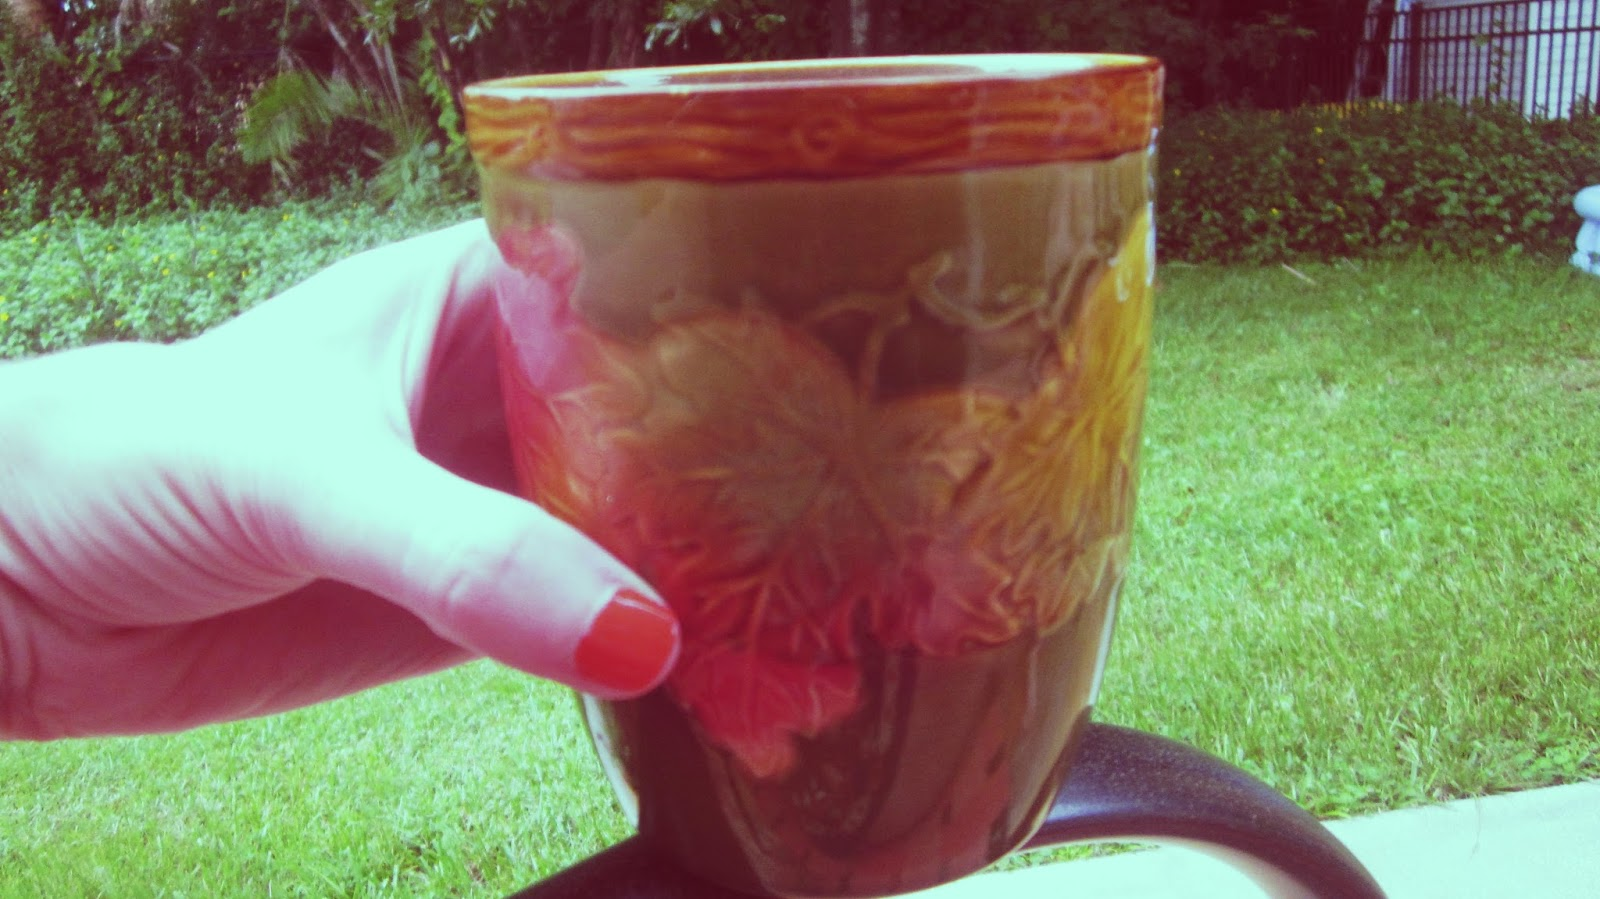 Woman With Red Painted Nails Holding a Woodland Themed Coffee Cup For Relaxing Tea